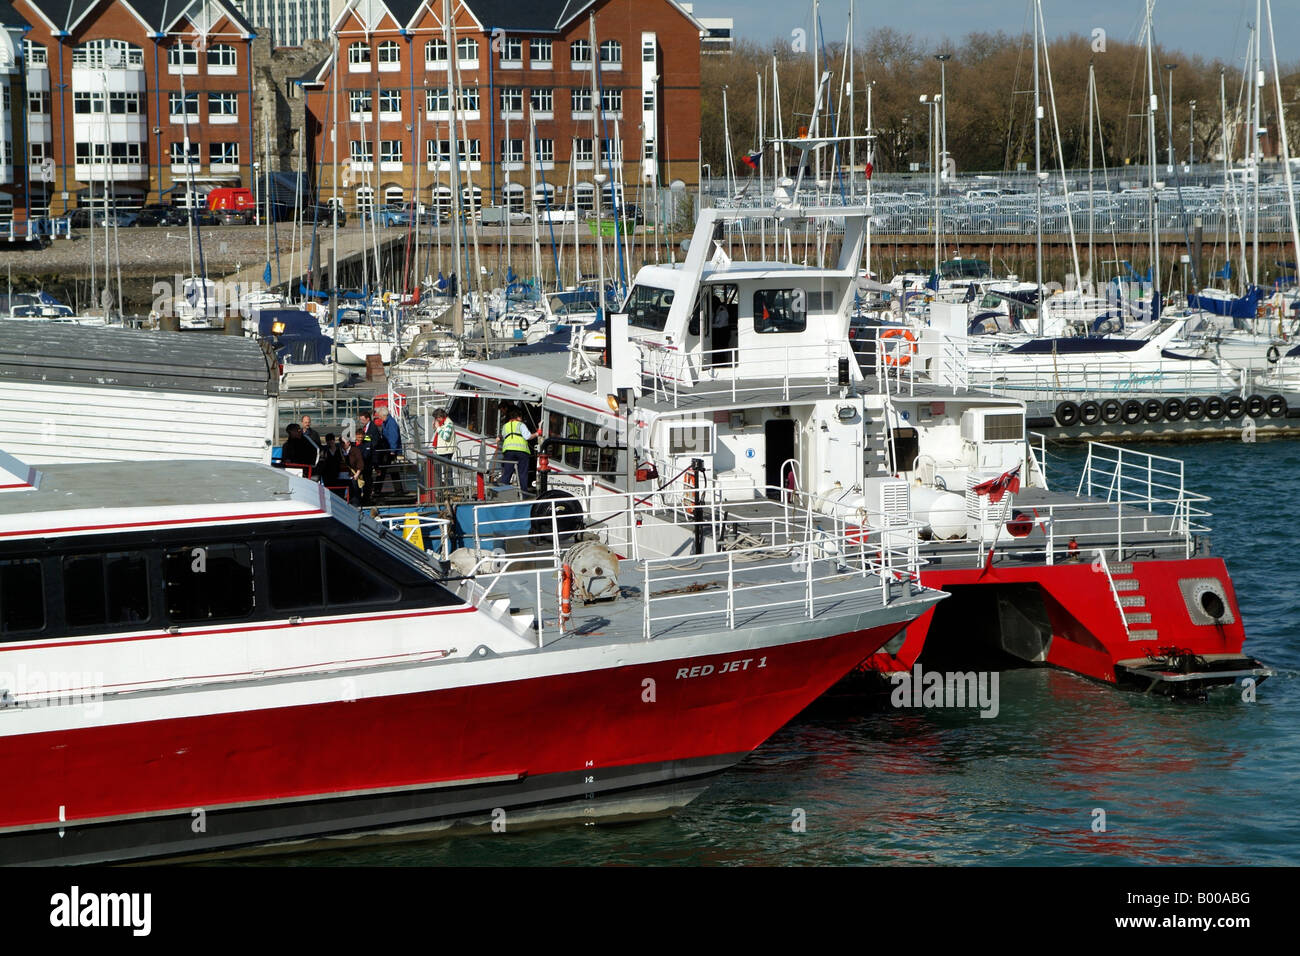 Red Jet Catamarans operated by Red Funnel Company at Town Quay Southampton - Stock Image